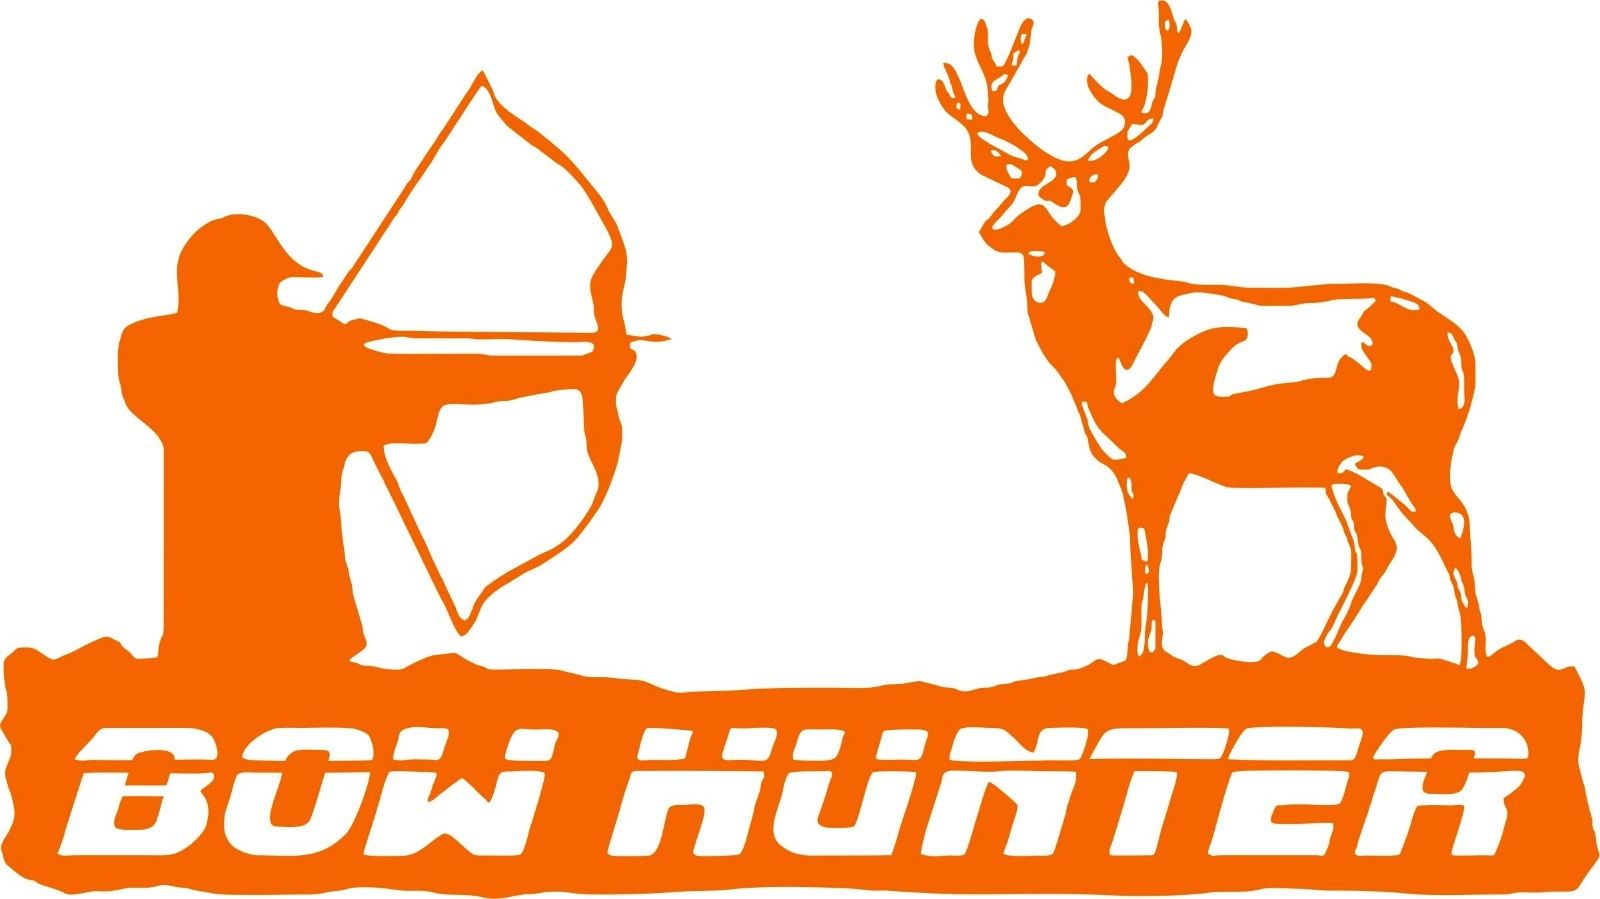 "Bow Hunter Deer Archery Hunting Car Truck Window Laptop Vinyl Decal Sticker - 13"" Long Edge"